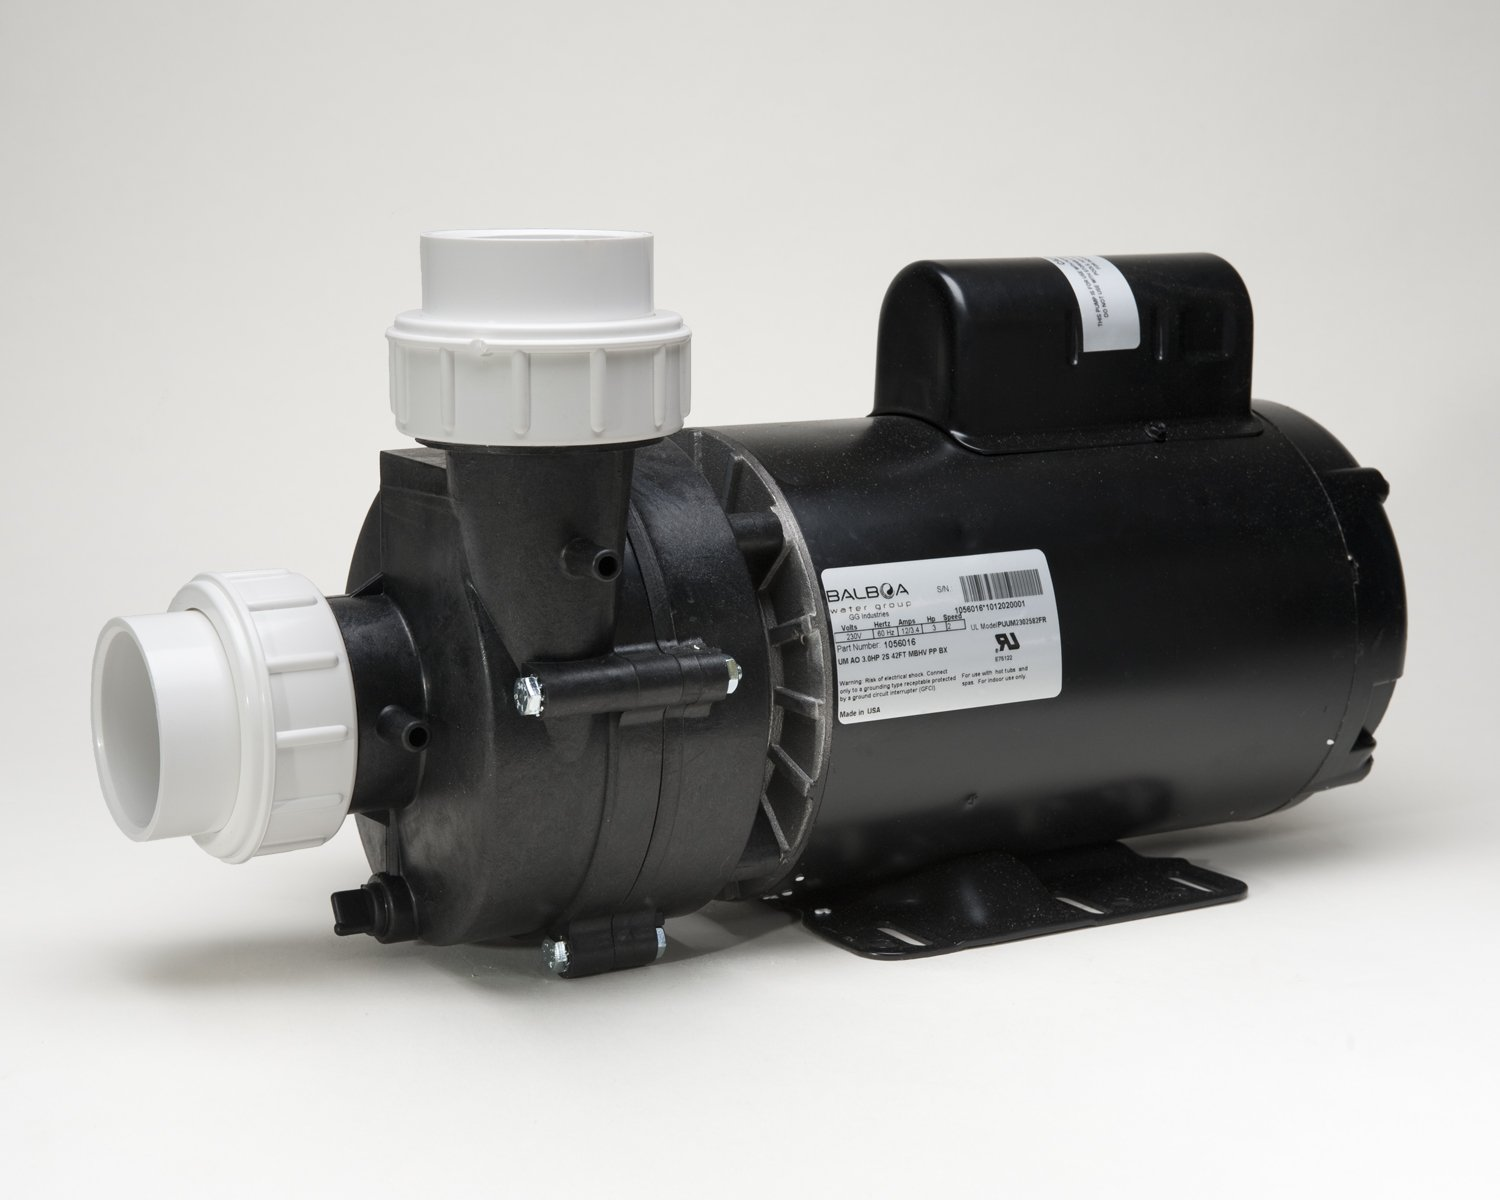 618YYPlpsnL._SL1500_ amazon com 3 hp spa pump vico ultimax by ultrajet balboa  at gsmx.co